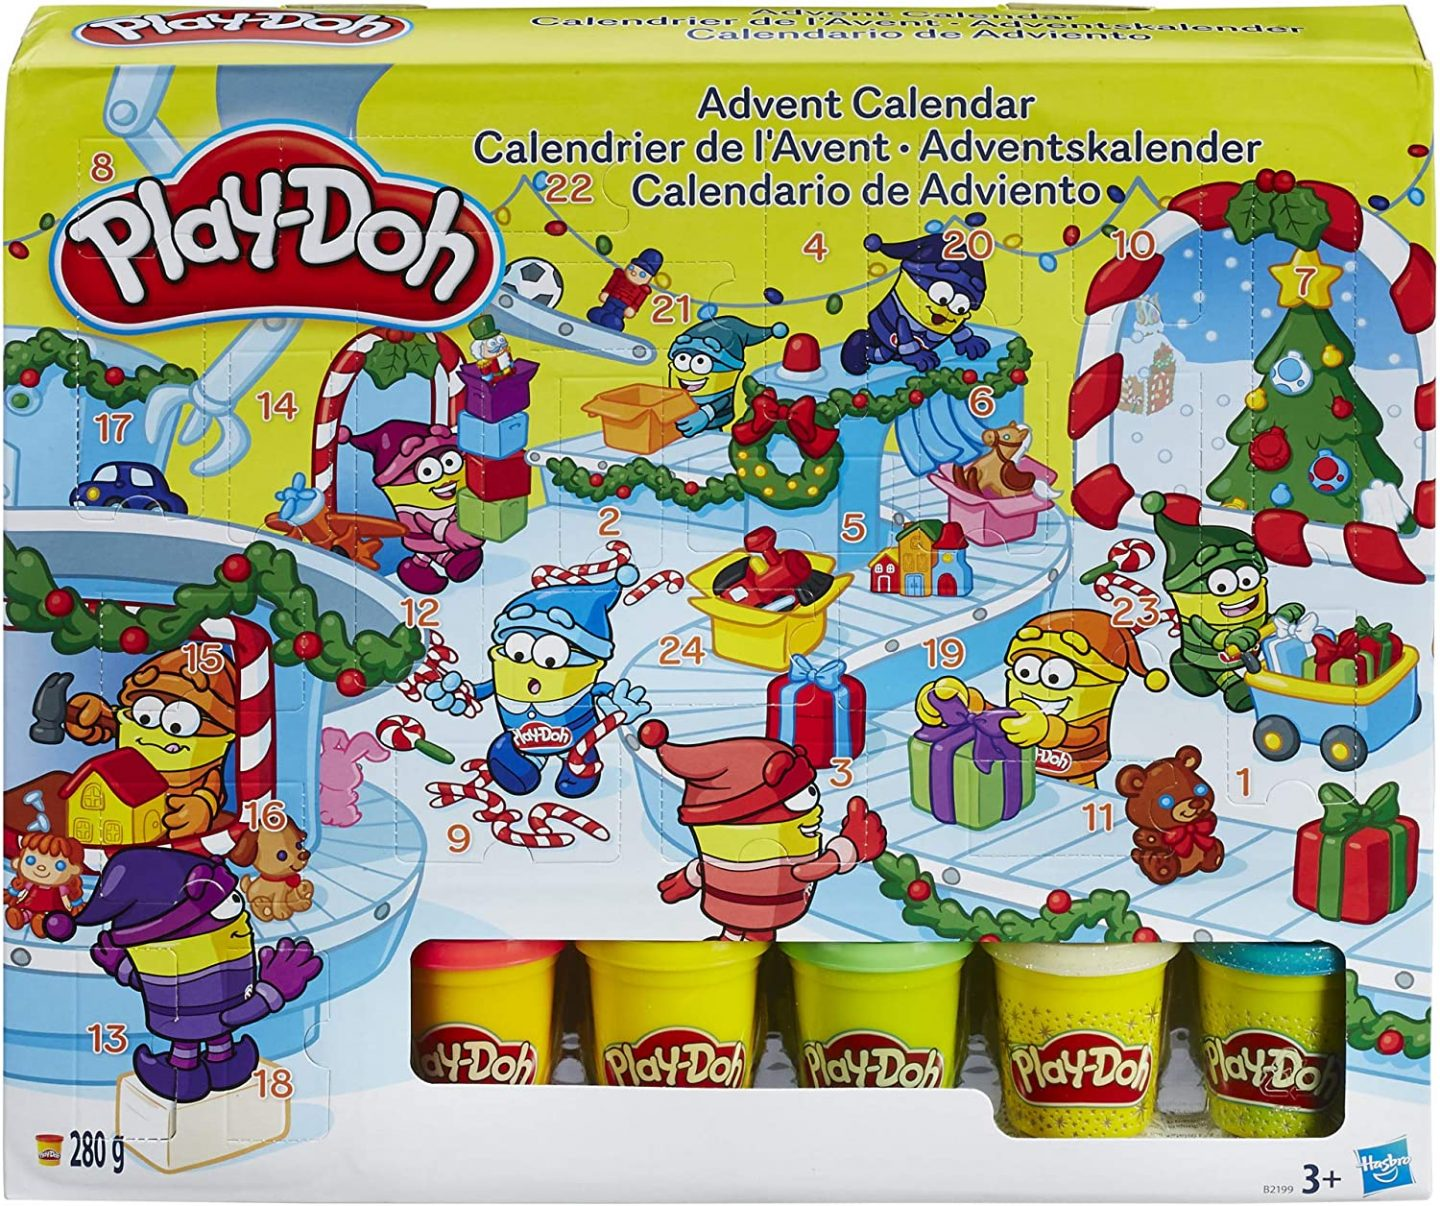 Play doh advent calendar is on our kist of the best kids toy advent calendar top list!